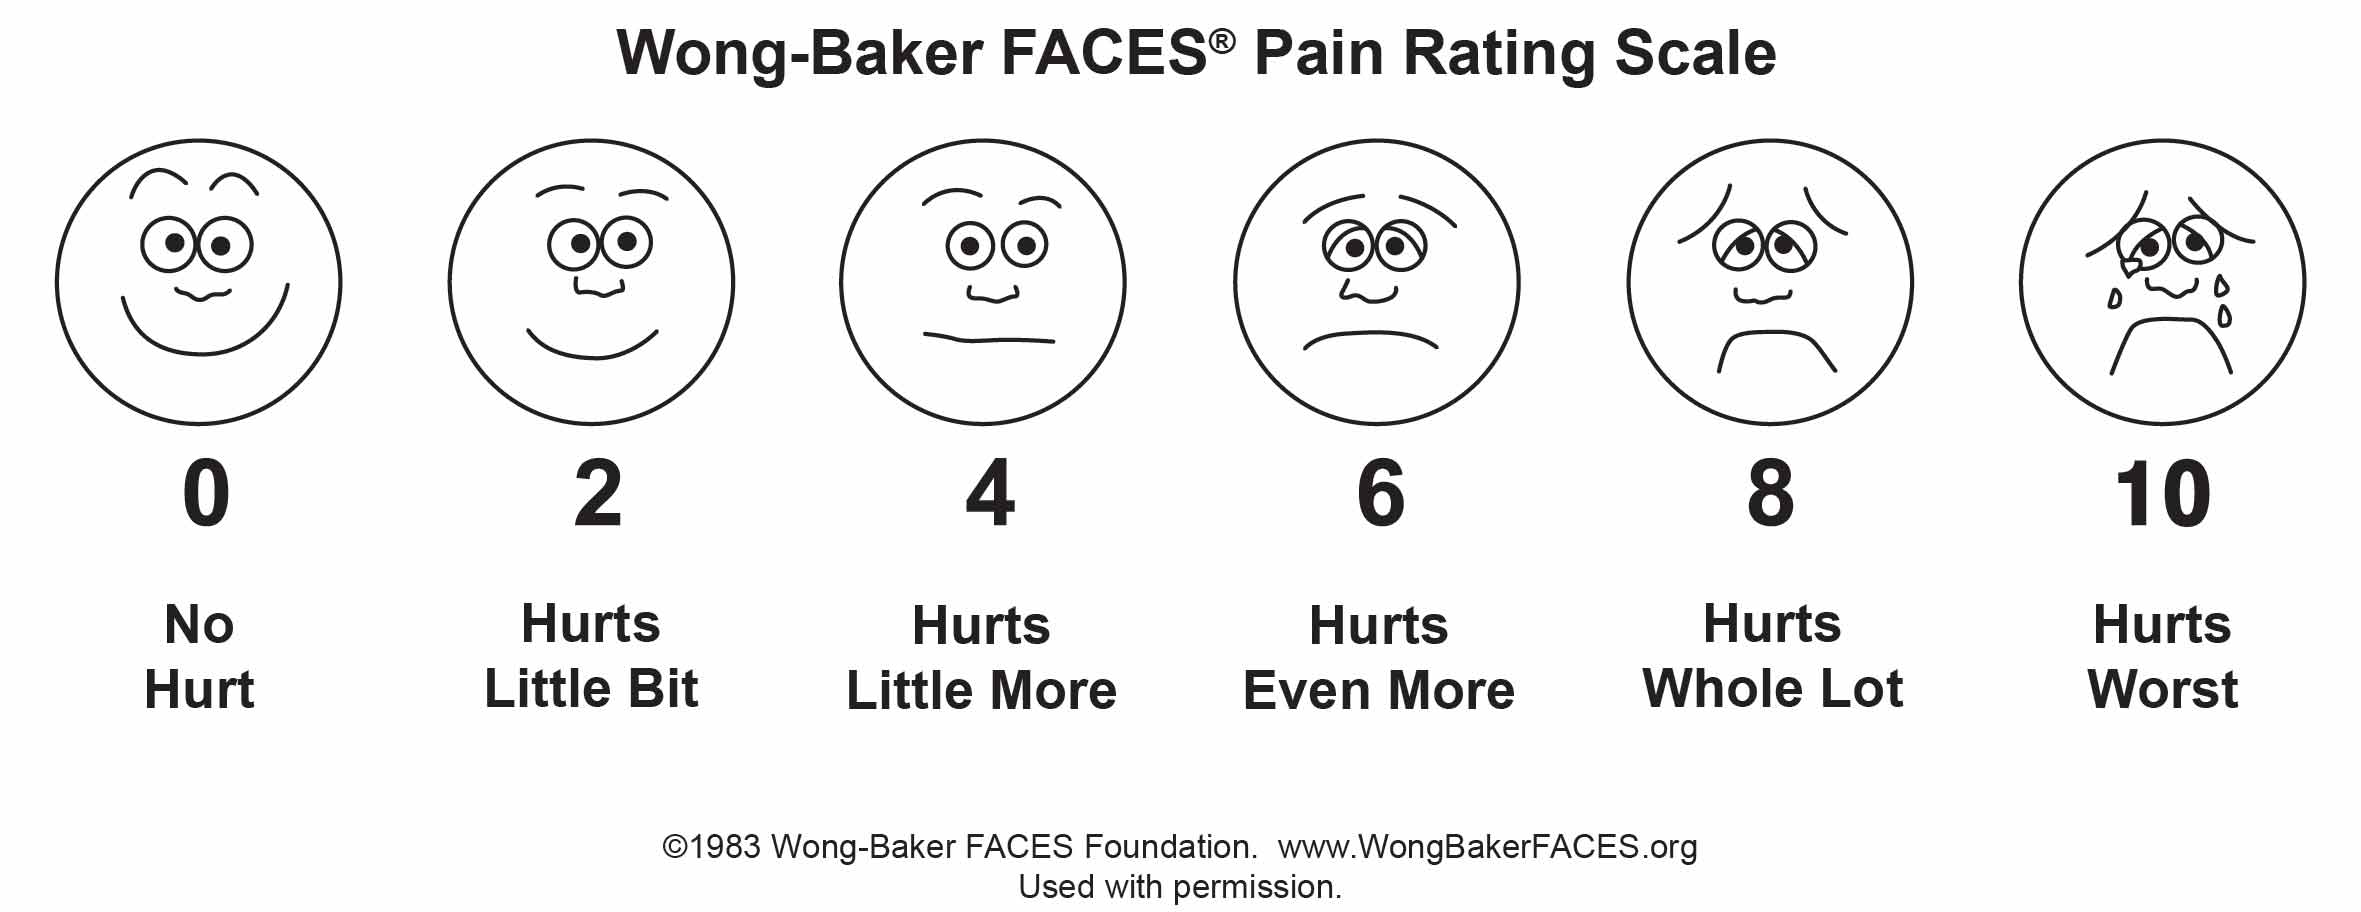 Wong Baker Pain Scale 0 to 10 with 0 equaling no hurt and 10 equaling hurts worst